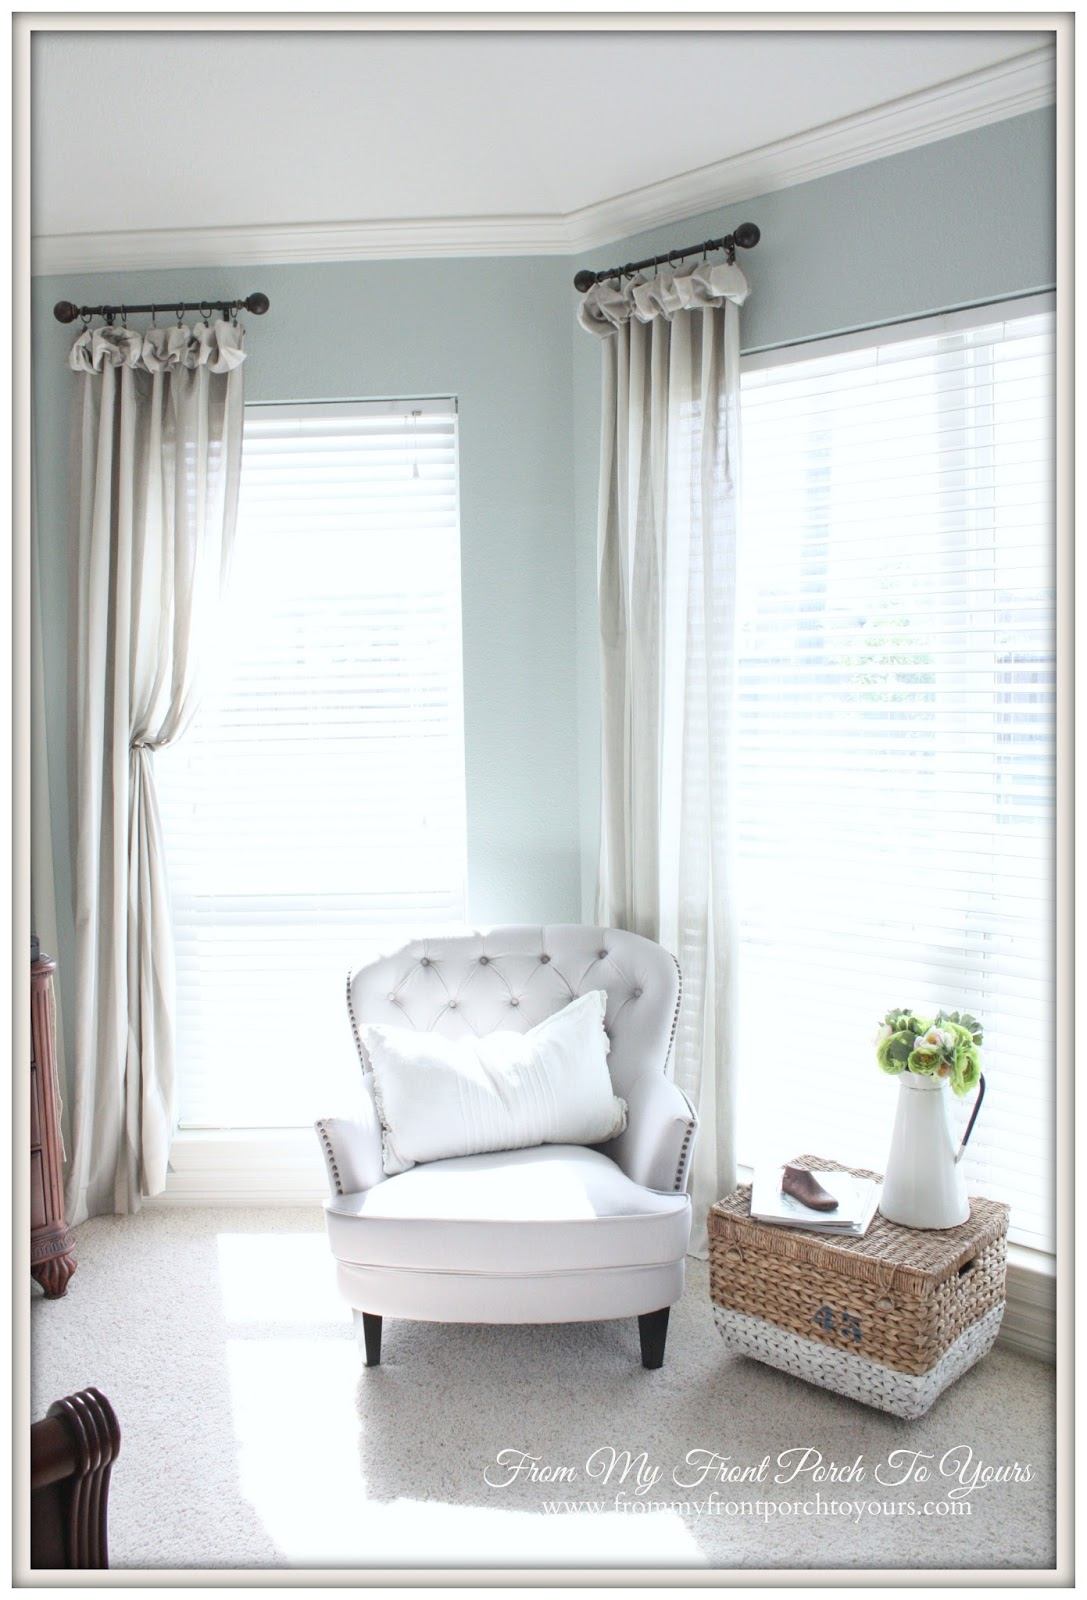 From My Front Porch To Yours- French Farmhouse Bedroom Seating Area